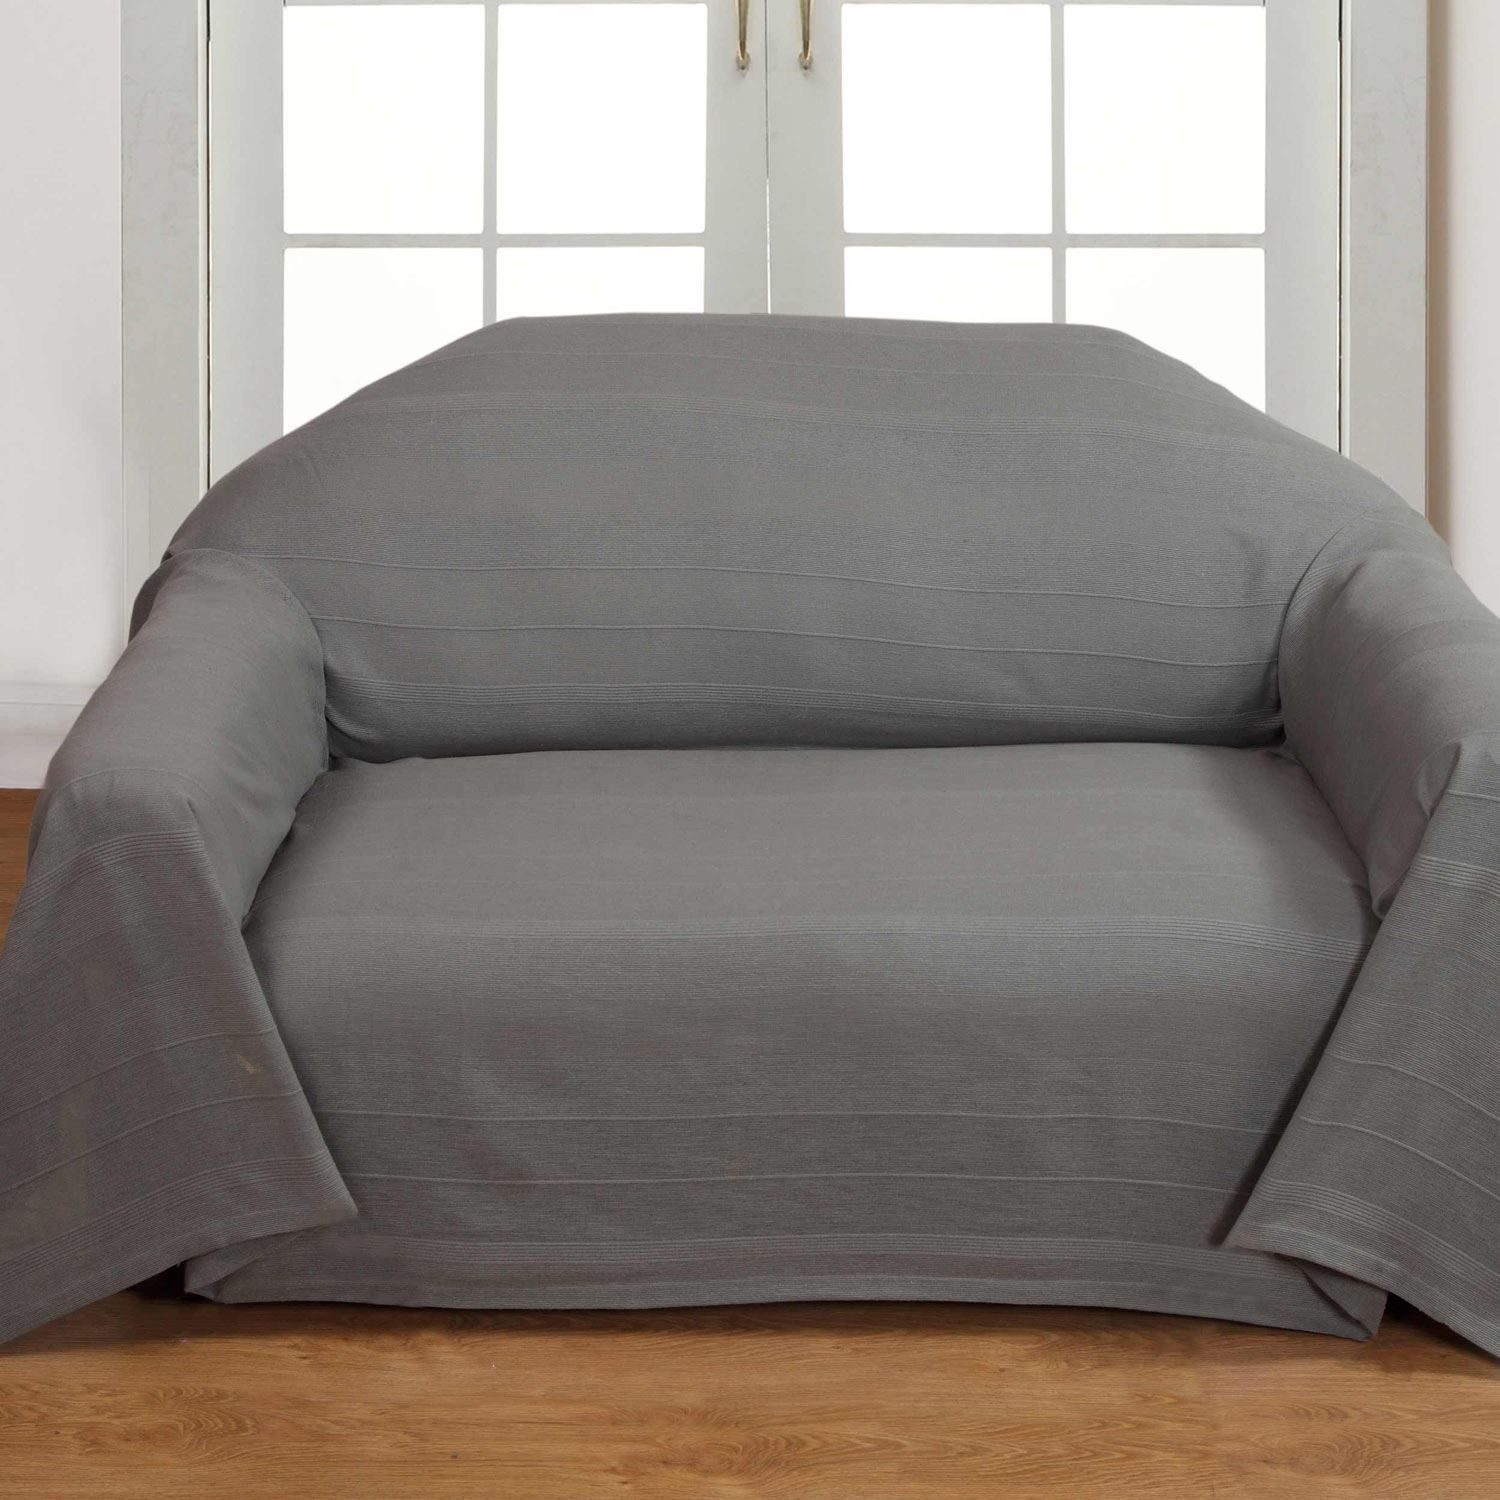 Grey Sofa Throw Covers | Apartment | Grey sofa throw, Sofa throw ...